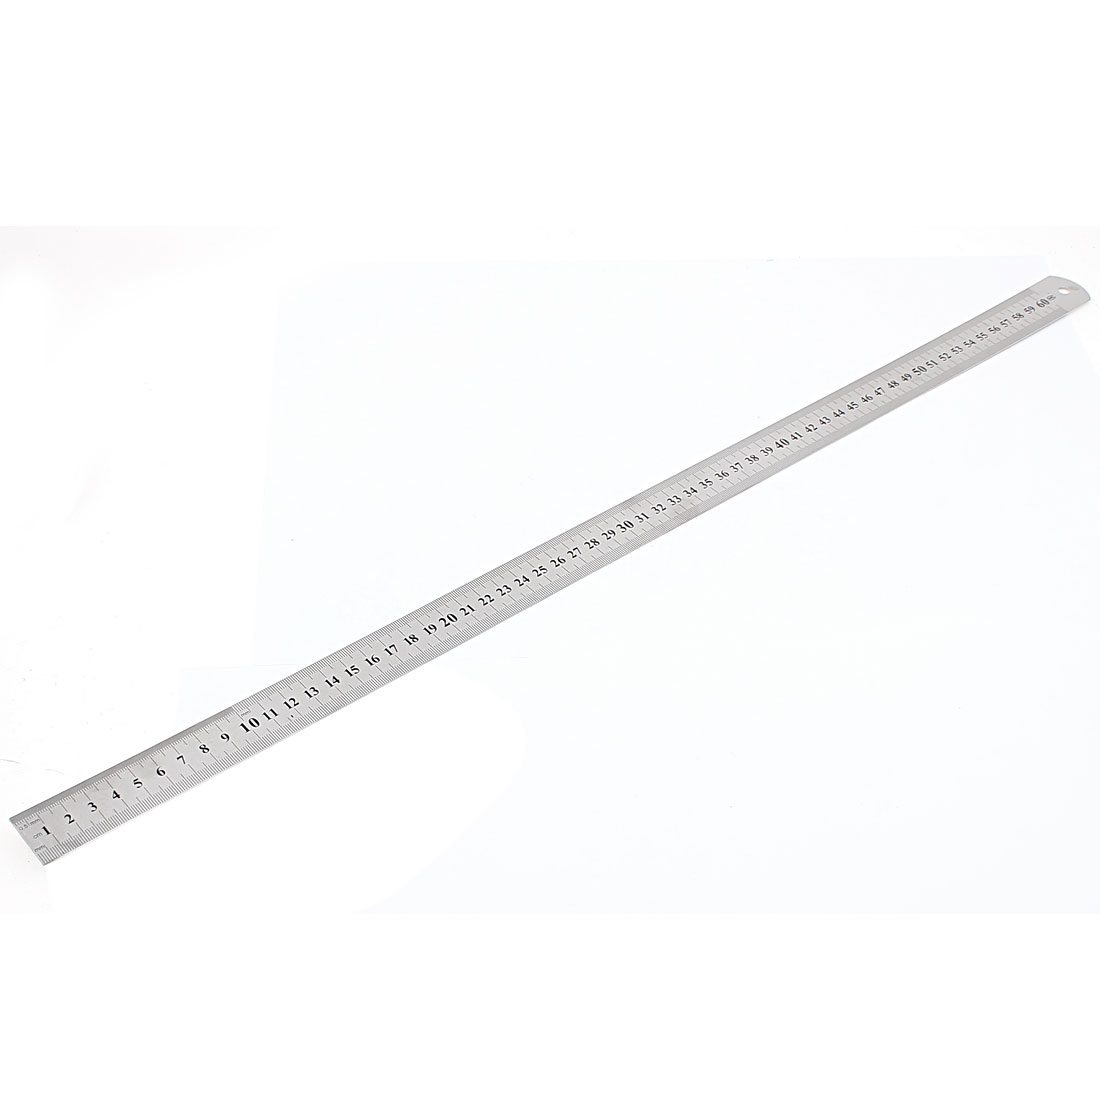 Stainless Steel Double Side Drafting Measuring Straight Edge Ruler 60cm 24 Inch